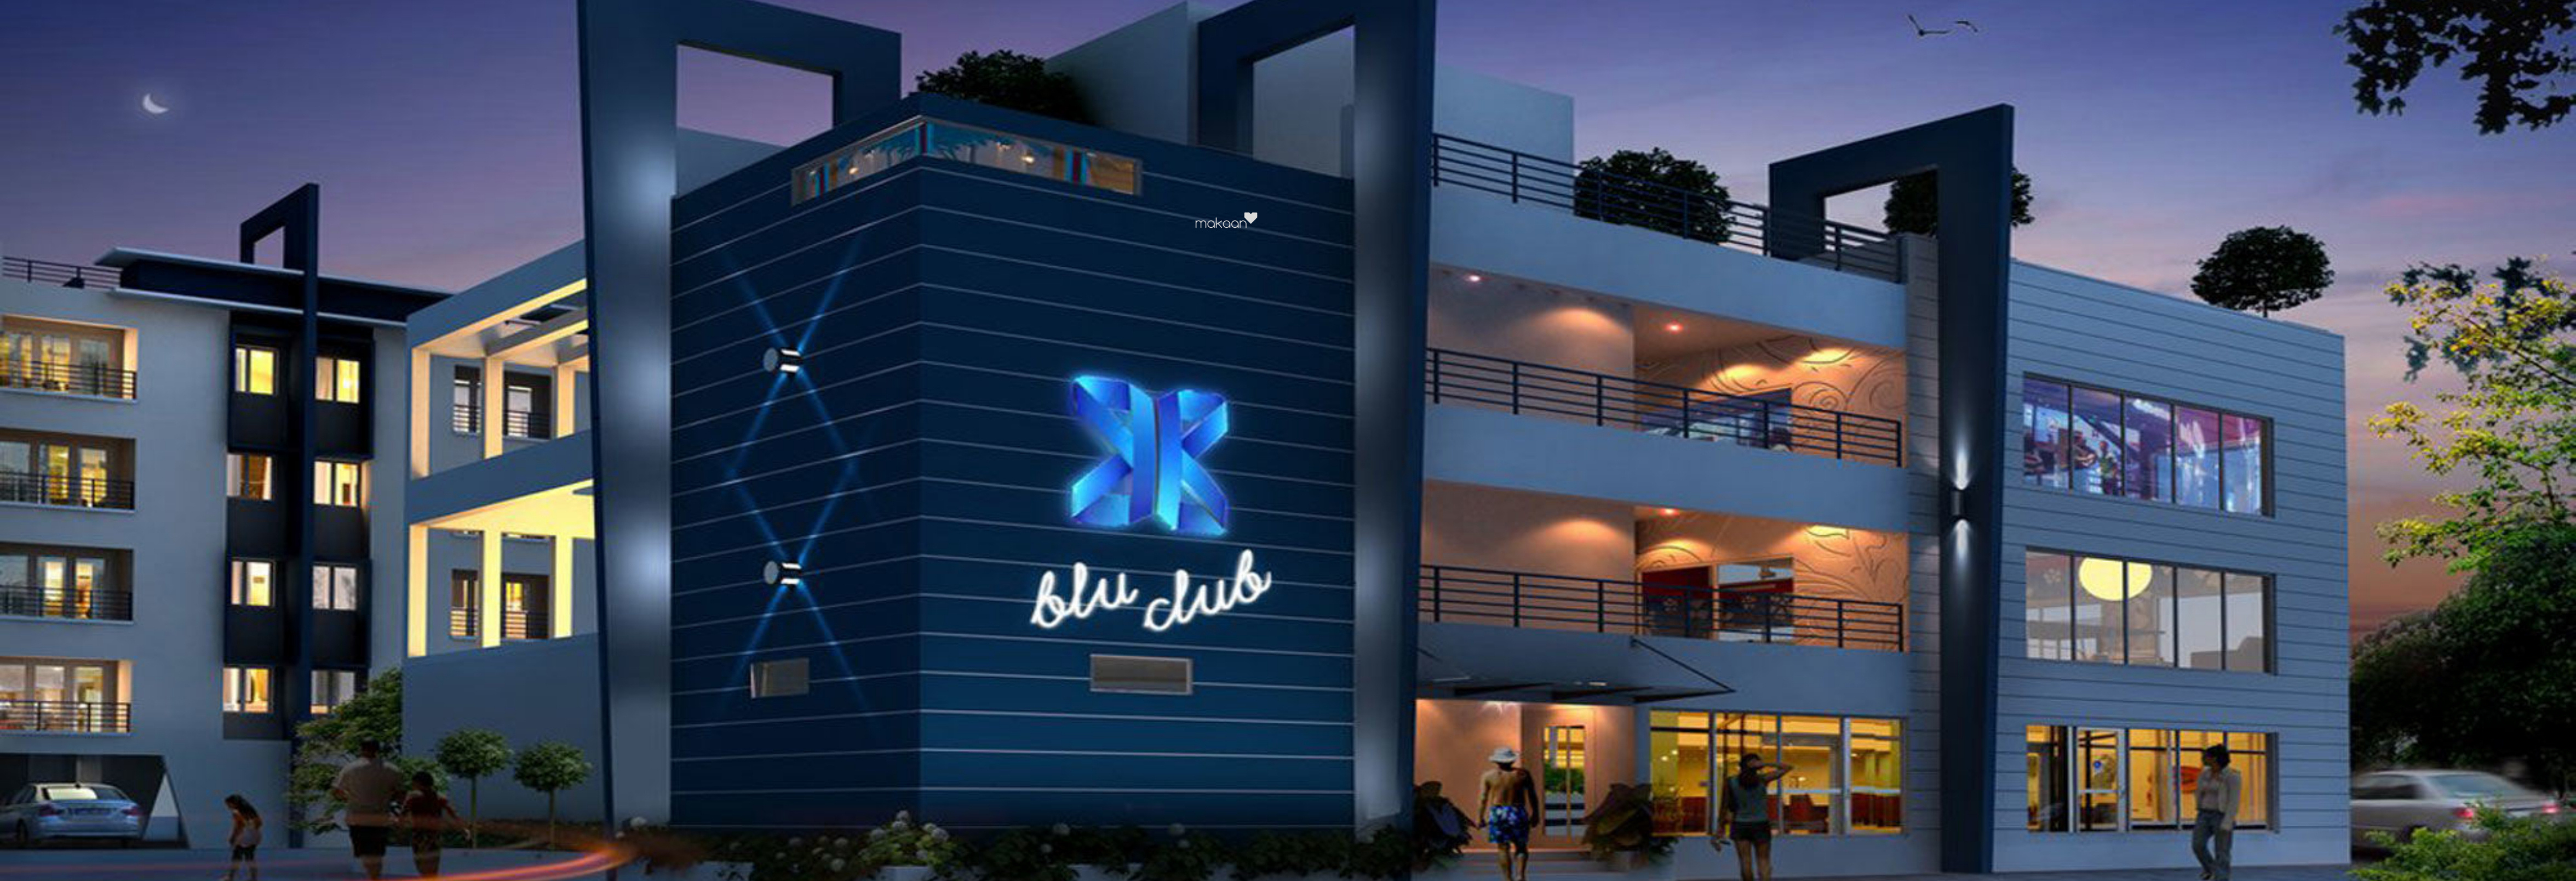 601 sq ft 1BHK 1BHK+1T (601 sq ft) Property By Mercury Housing and Properties In Blue Bells, Padur